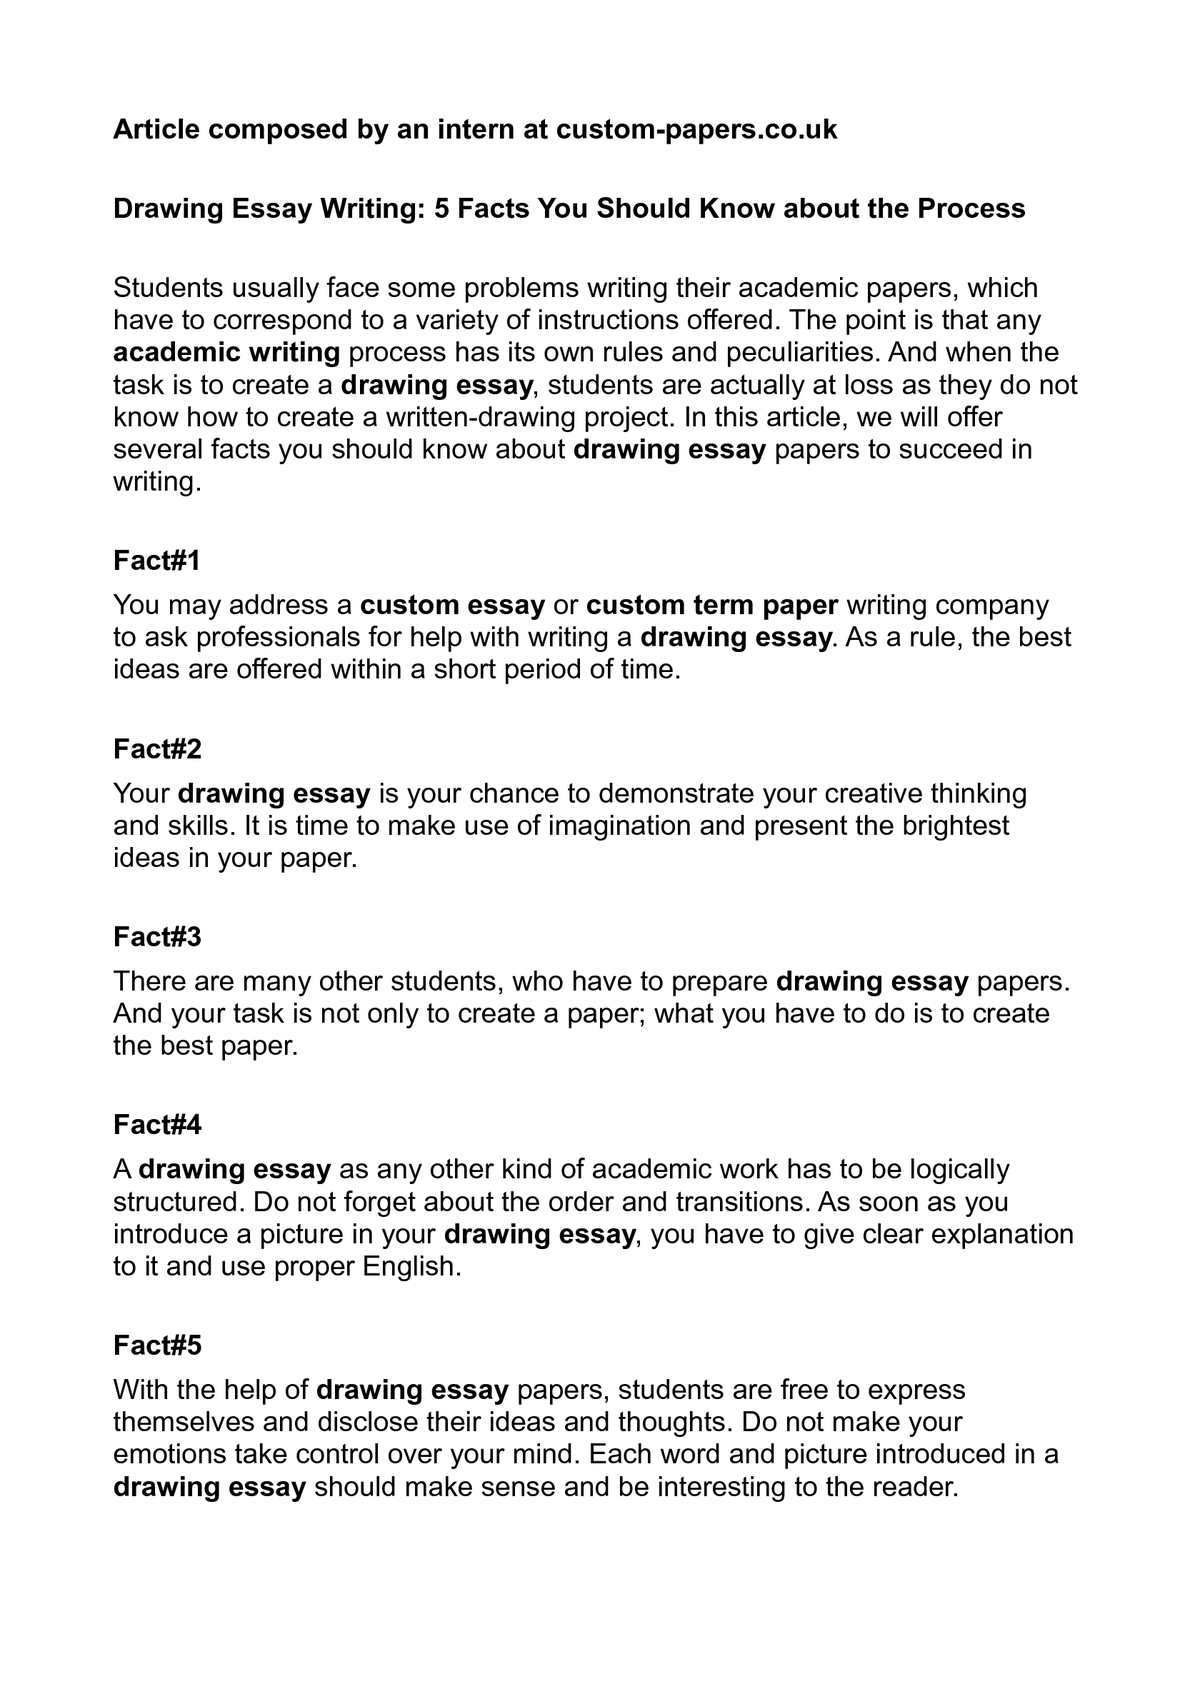 calaméo drawing essay writing 5 facts you should know about the